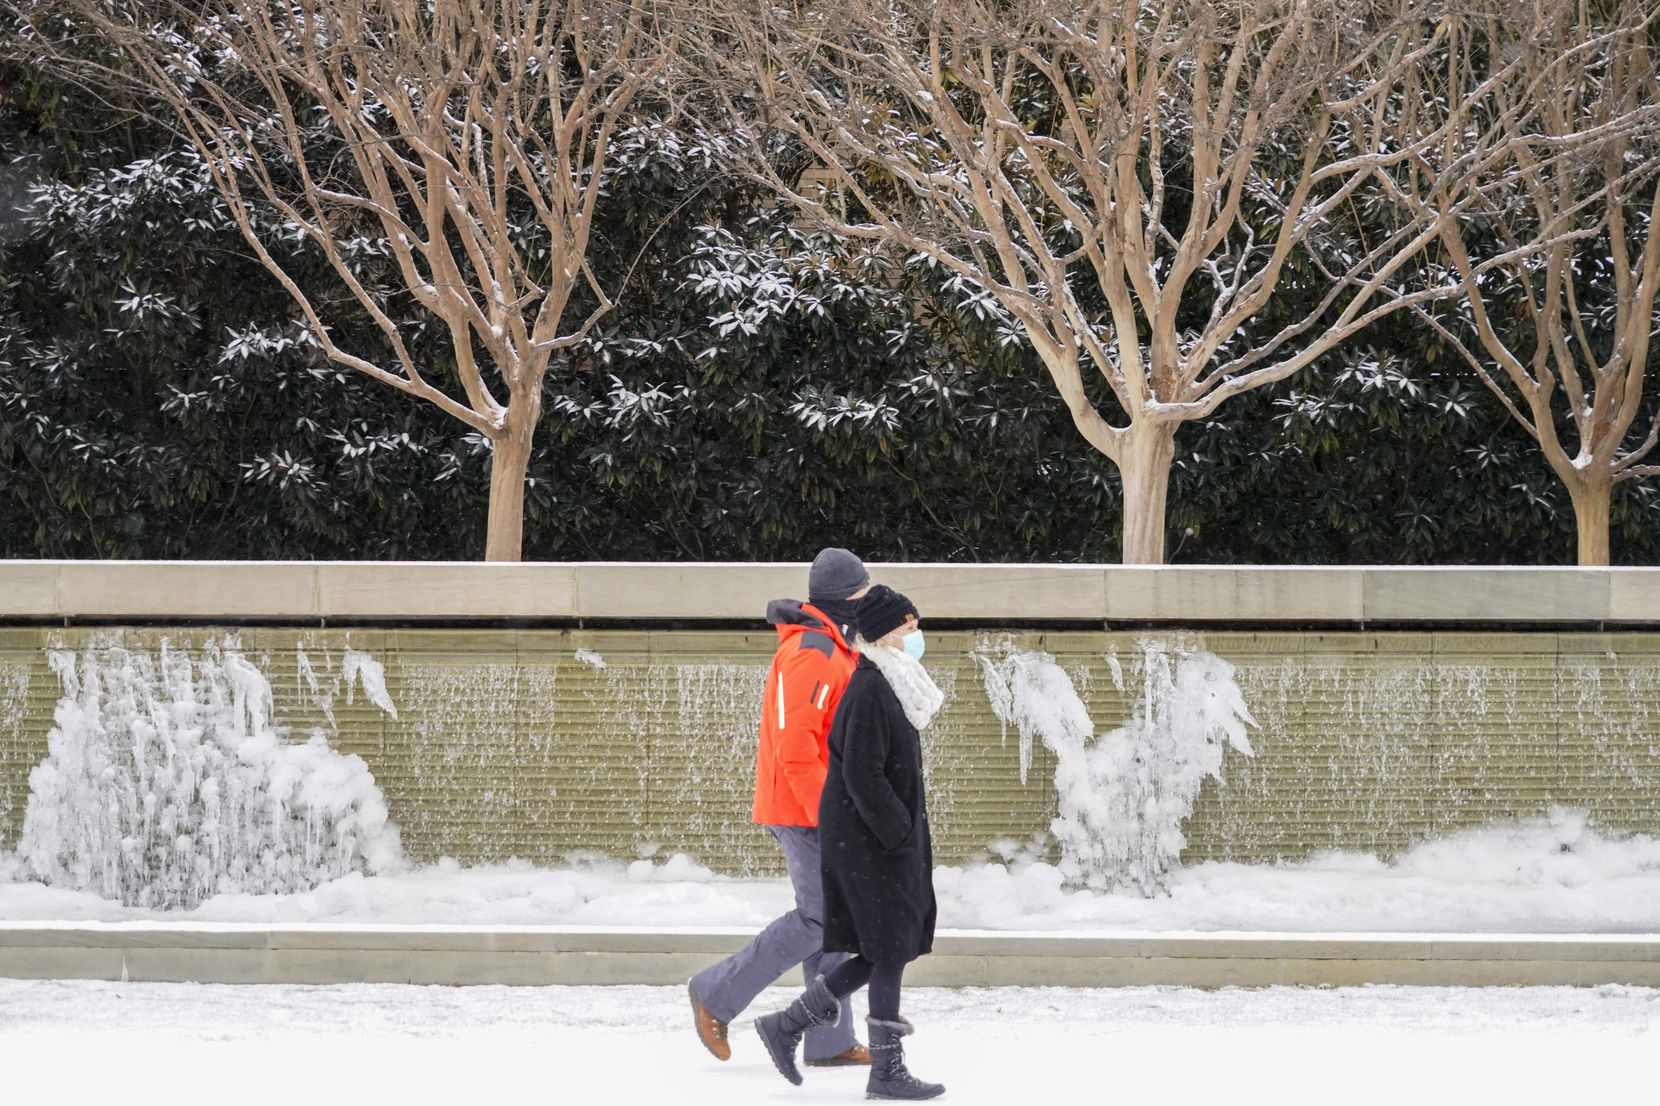 People walk past frozen fountains on Hillcrest near Lovers lane as a winter storm brings snow and freezing temperatures to North Texas on Sunday, Feb. 14, 2021, in University Park.  A winter storm watch has been issued for all of North Texas, including Dallas, Denton, Collin and Tarrant counties and will be in effect from late Saturday through Monday afternoon.